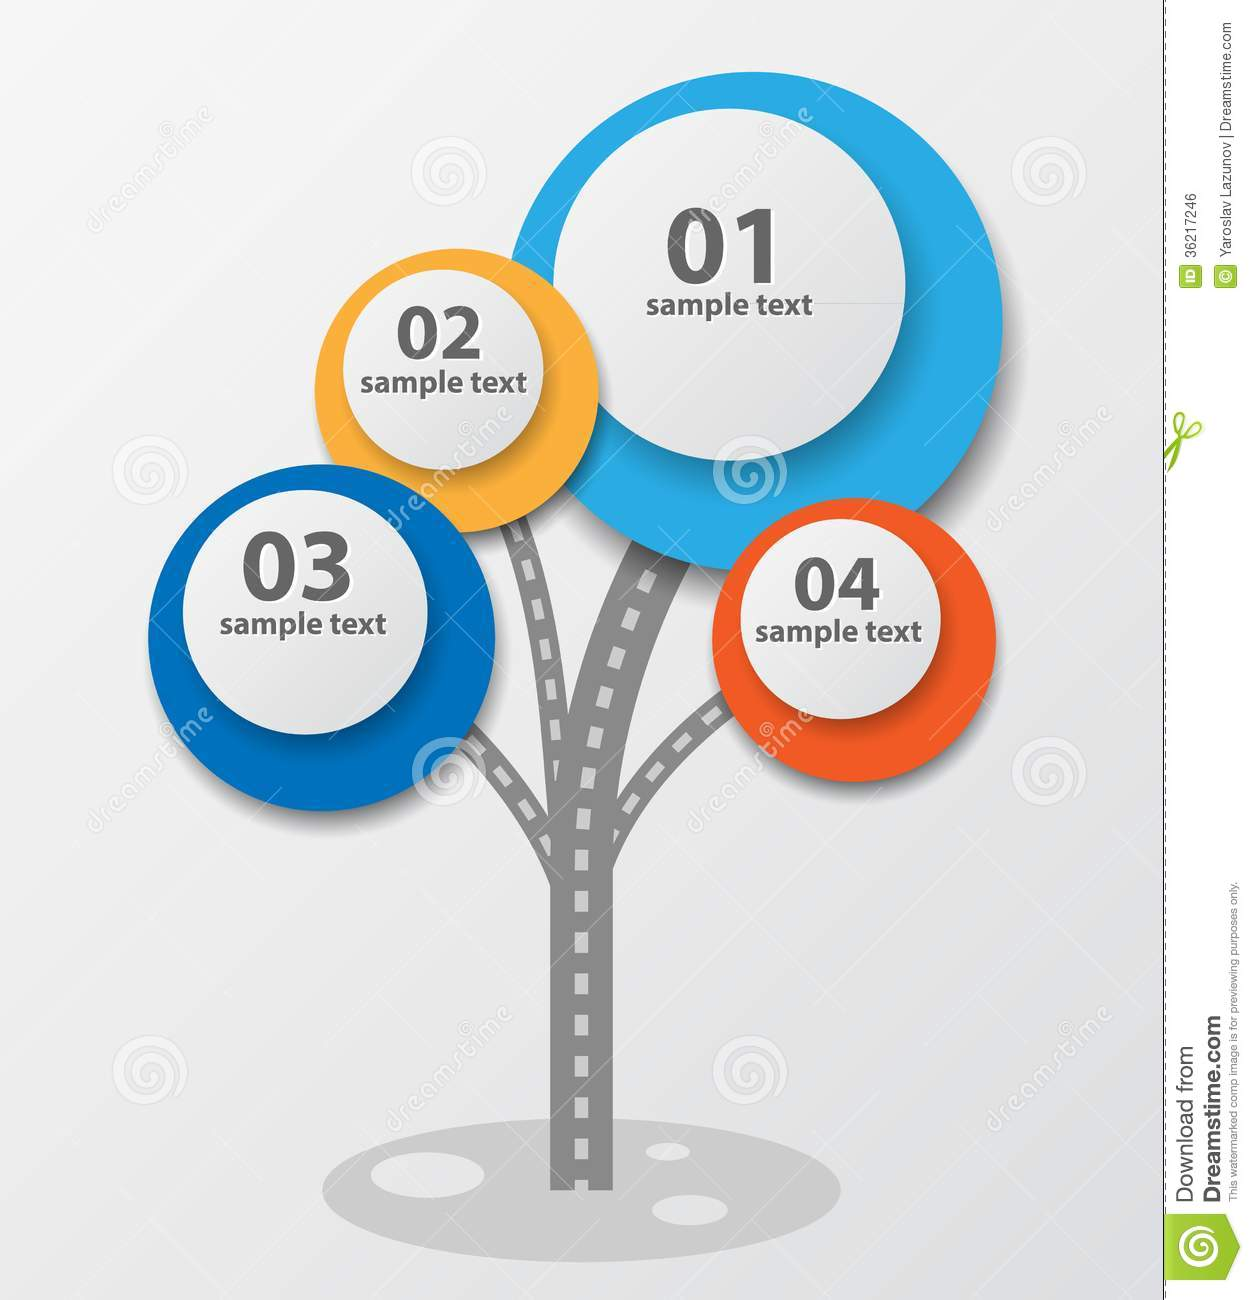 ... Template Design With Tree. Royalty Free Stock Image - Image: 36217246